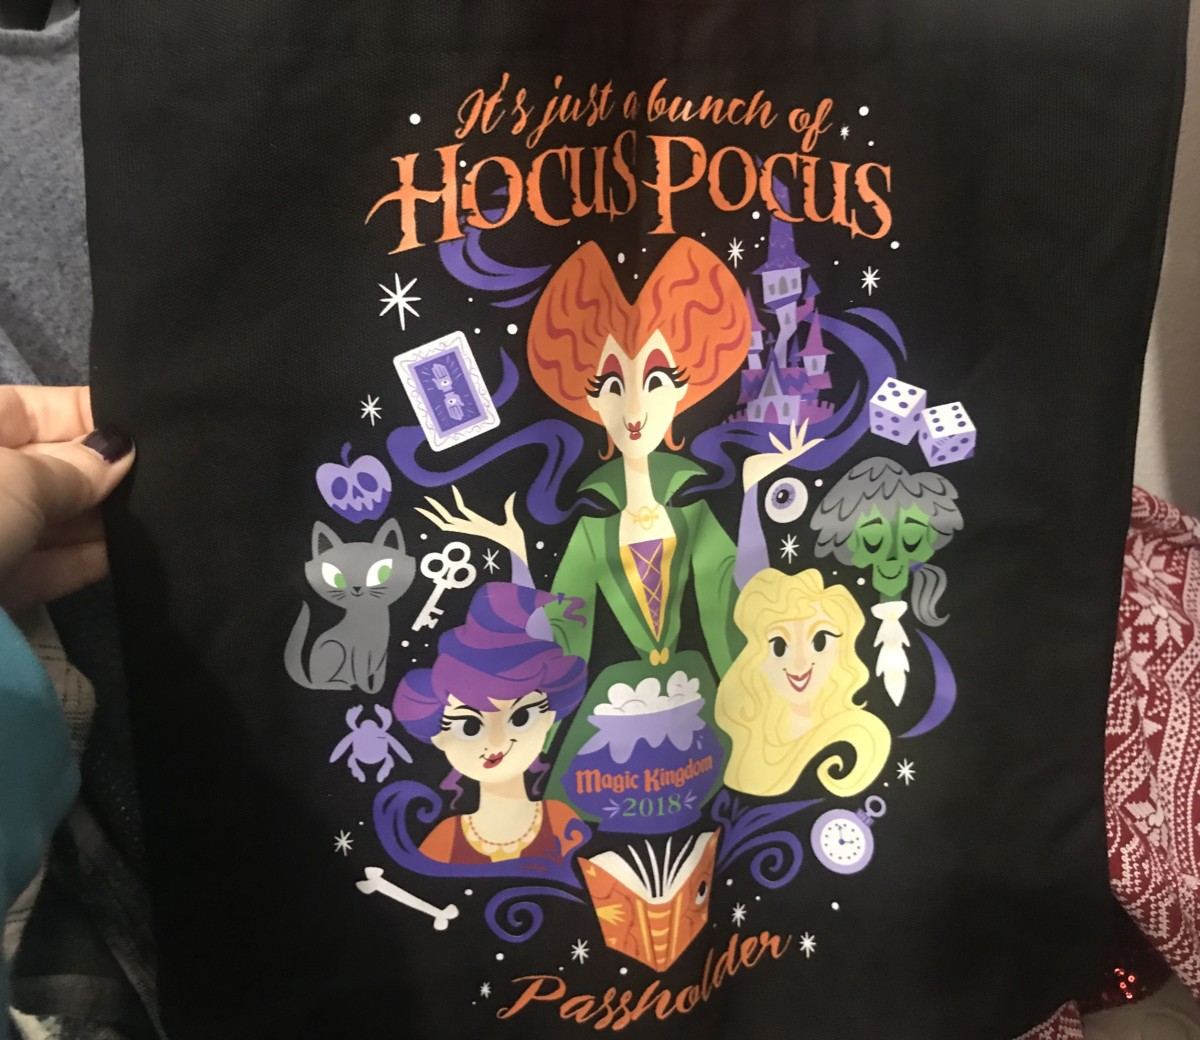 Celebrate 25 Years of Hocus Pocus With NEW Merchandise! #notsoscary 6